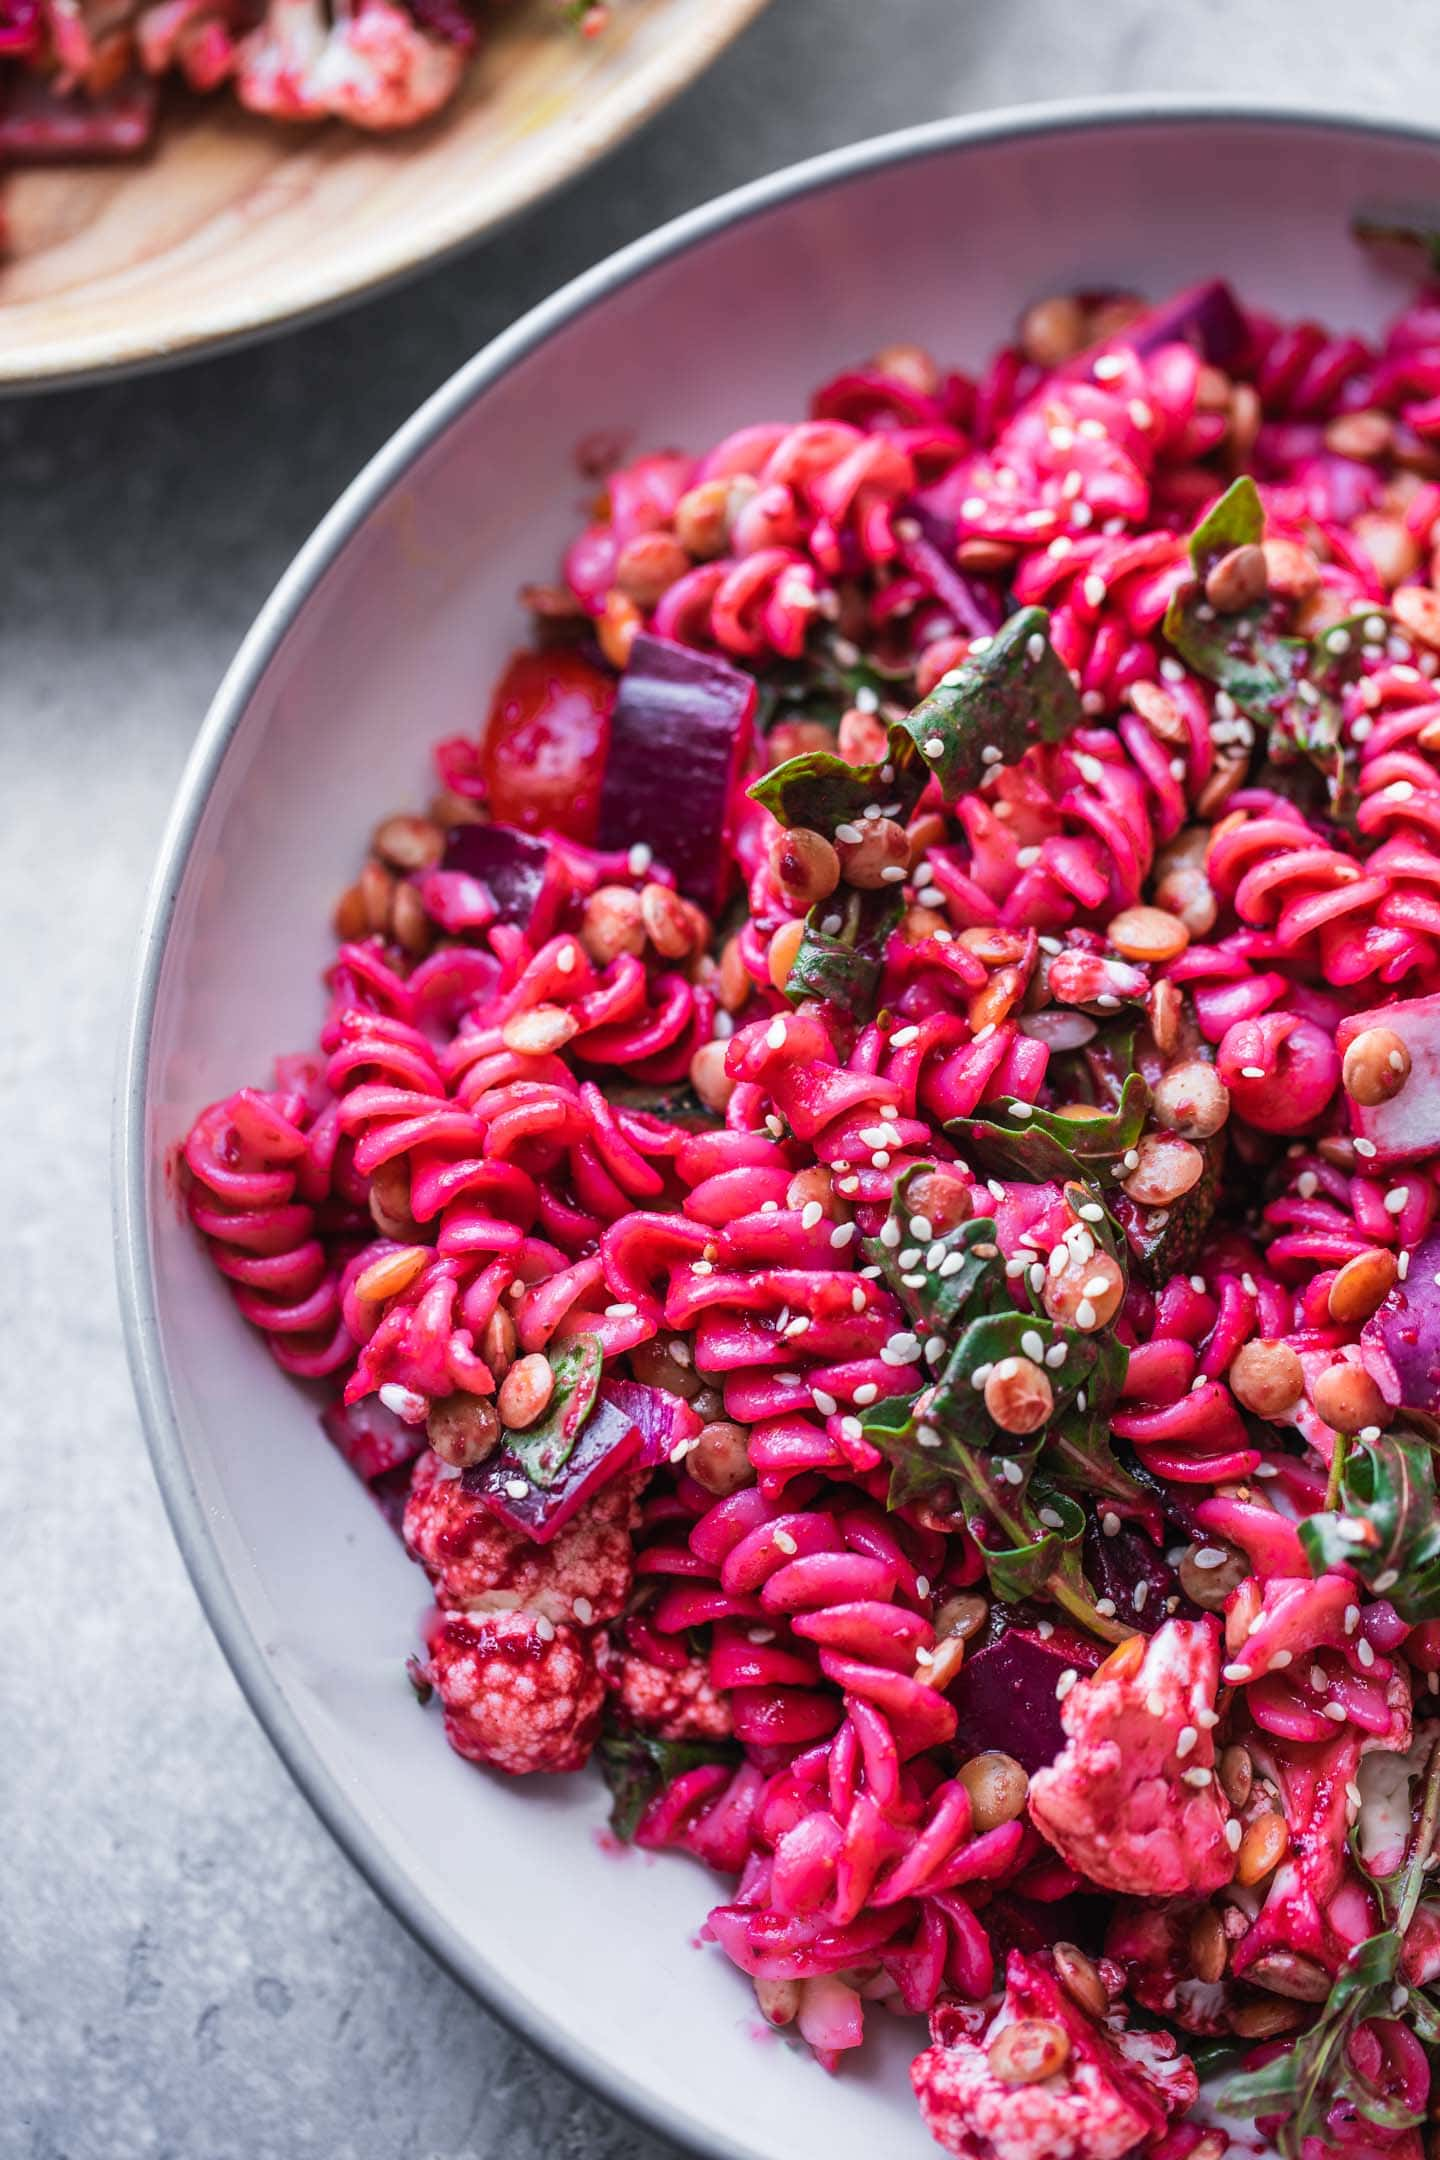 Vegan pasta salad with beetroot green lentils and vegetables